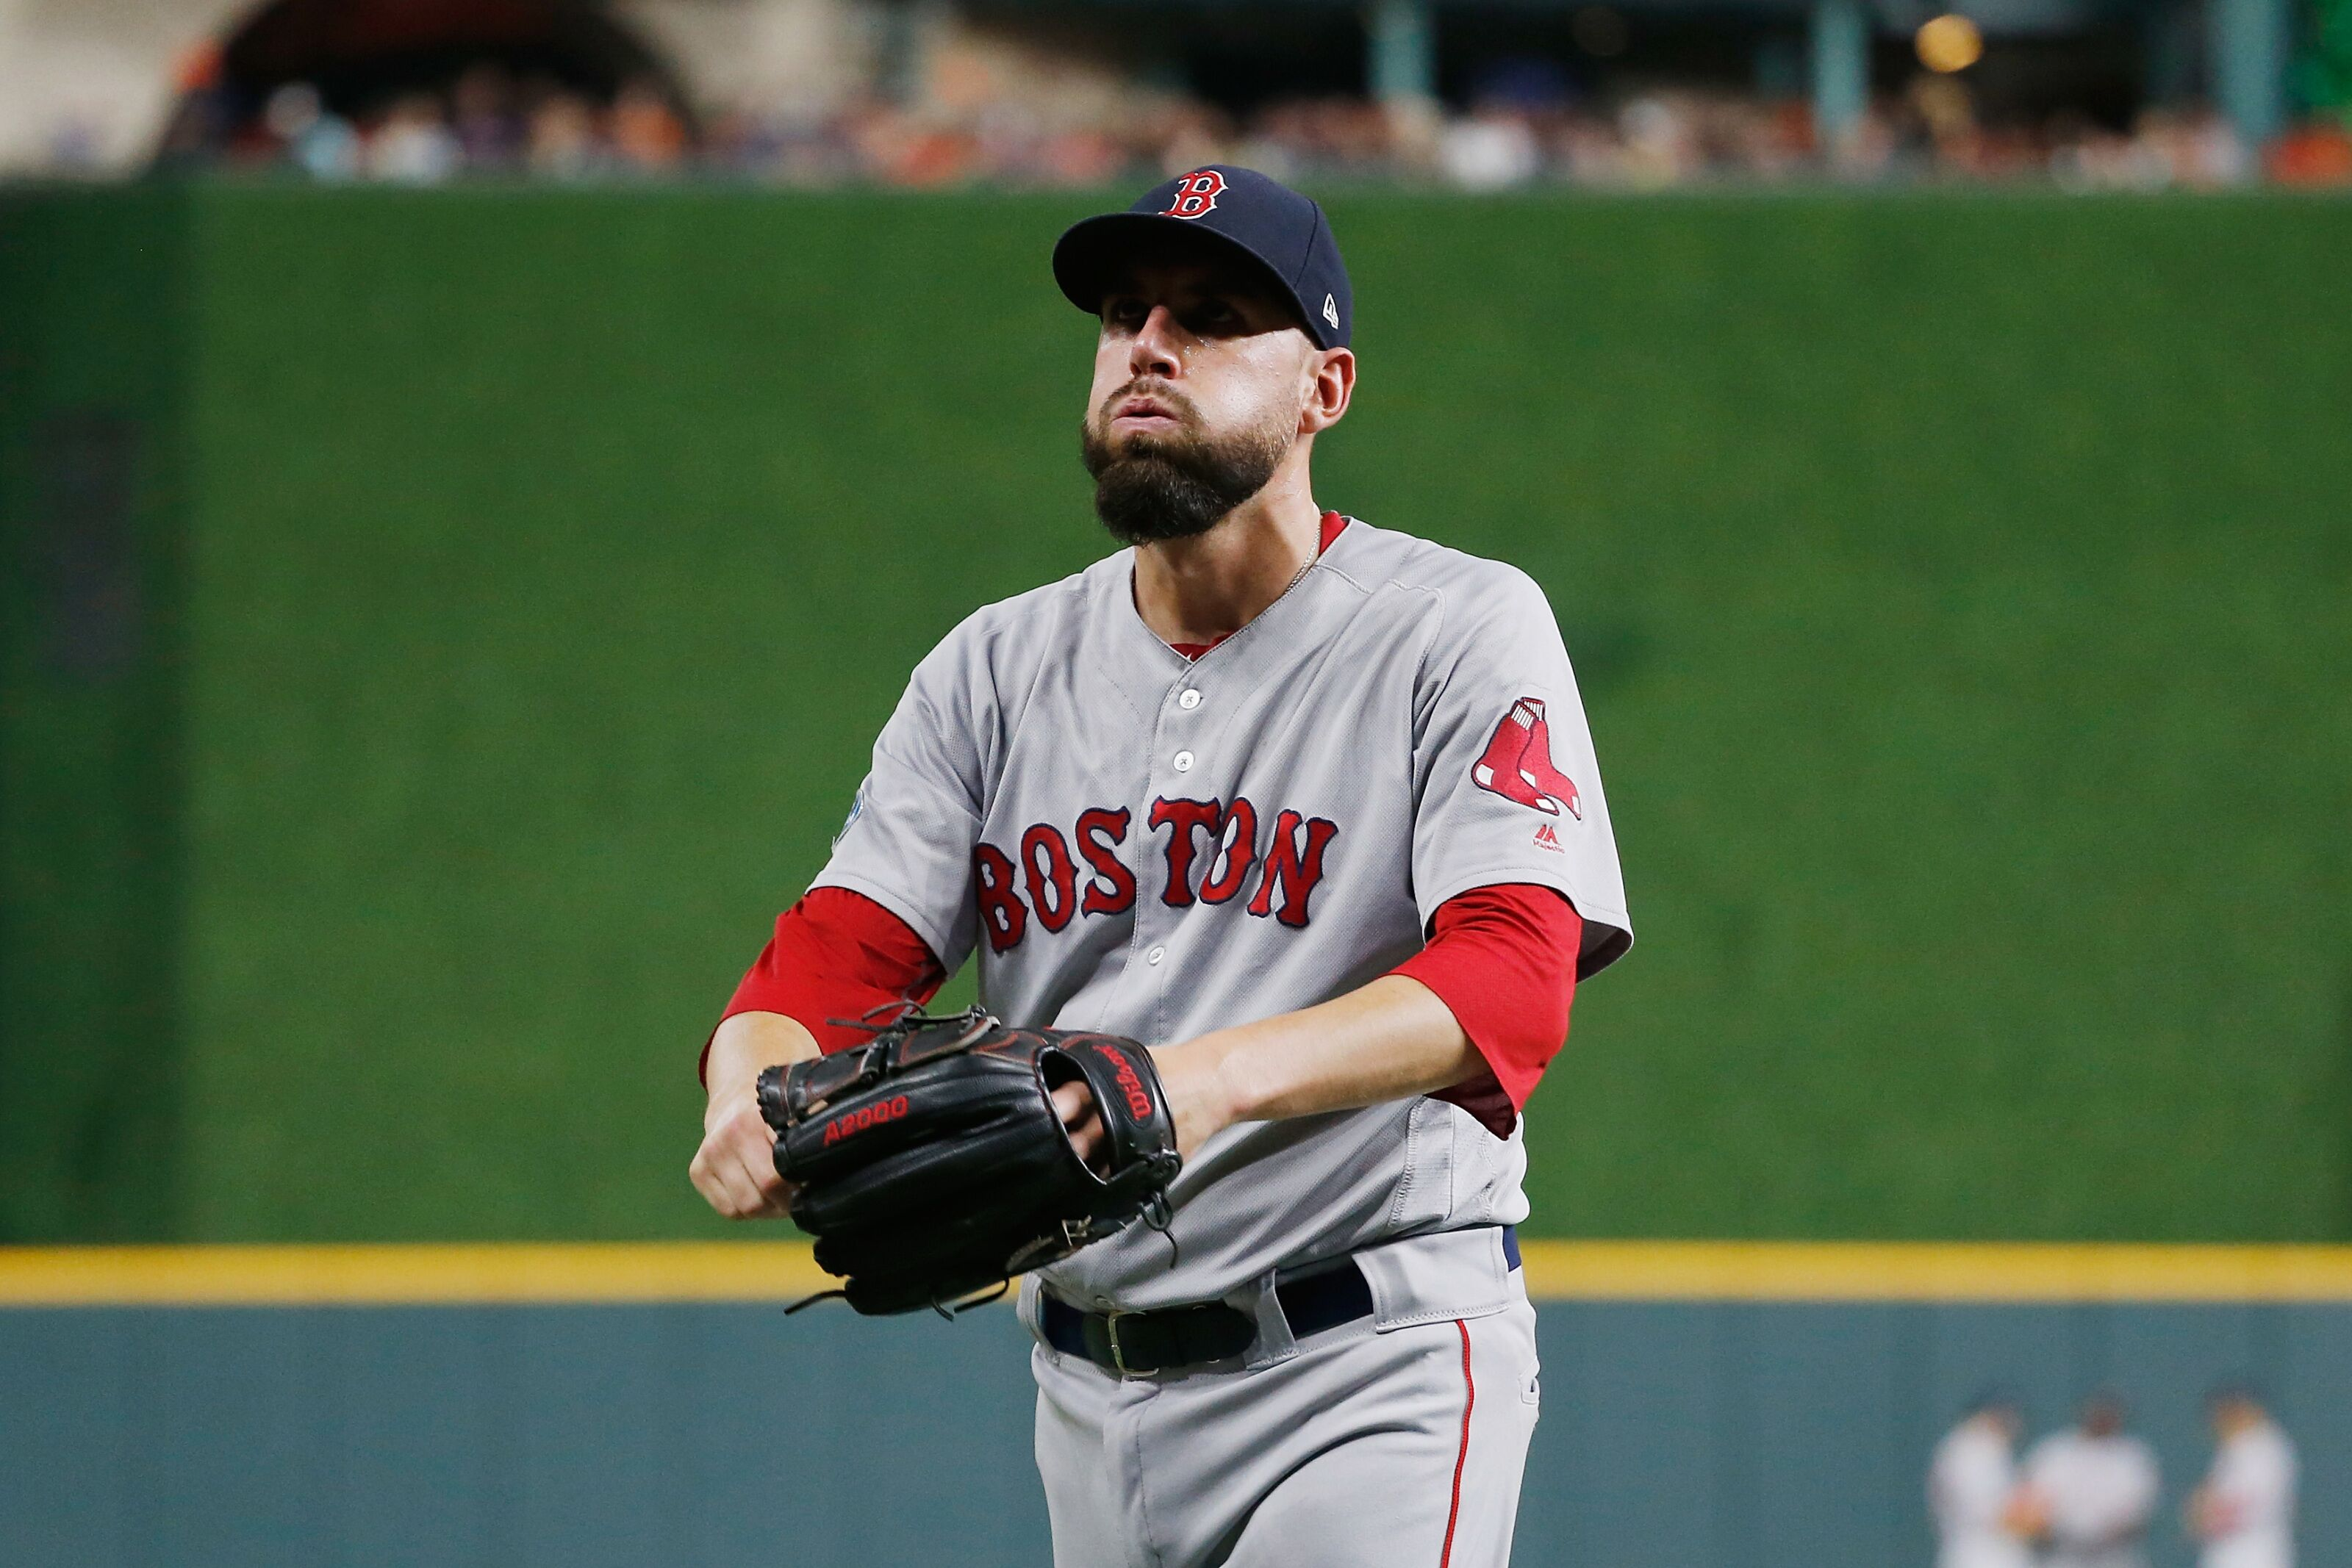 Red Sox: Matt Barnes' blown save costs Rodriguez monumental win